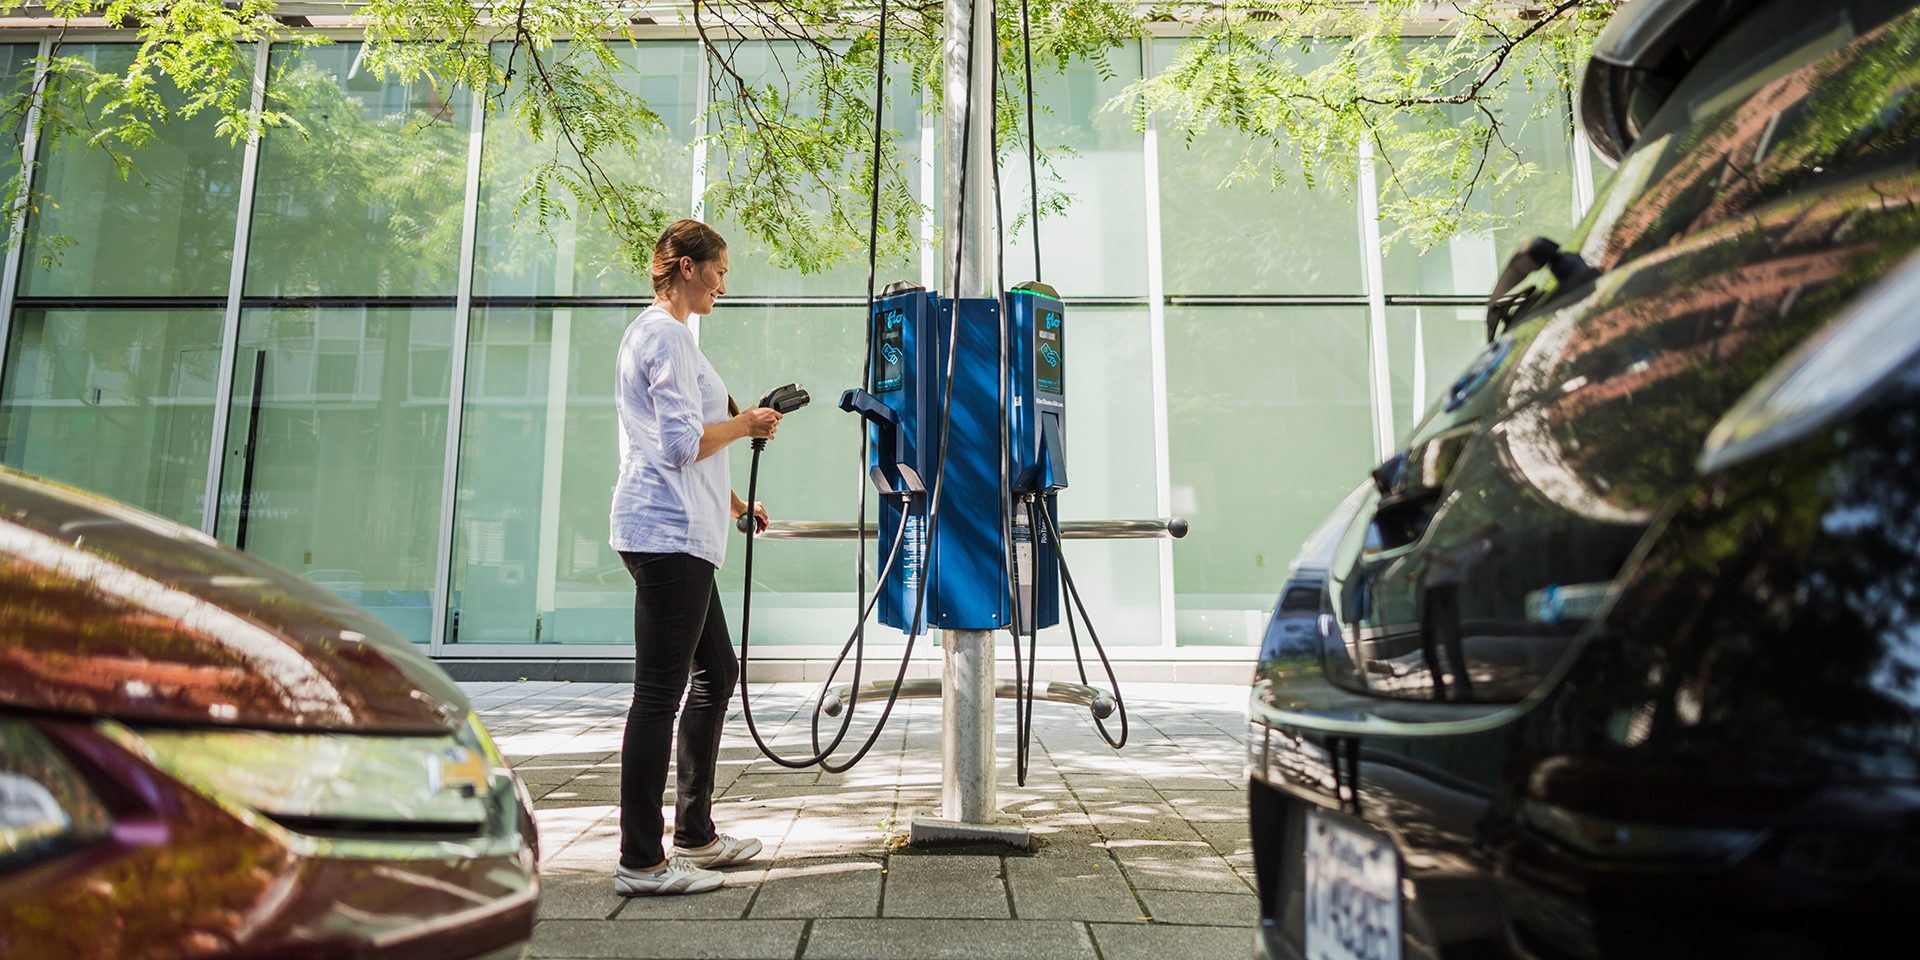 NYC will get curbside EV charging, but ConEd's pricing will make people sad - Electrek